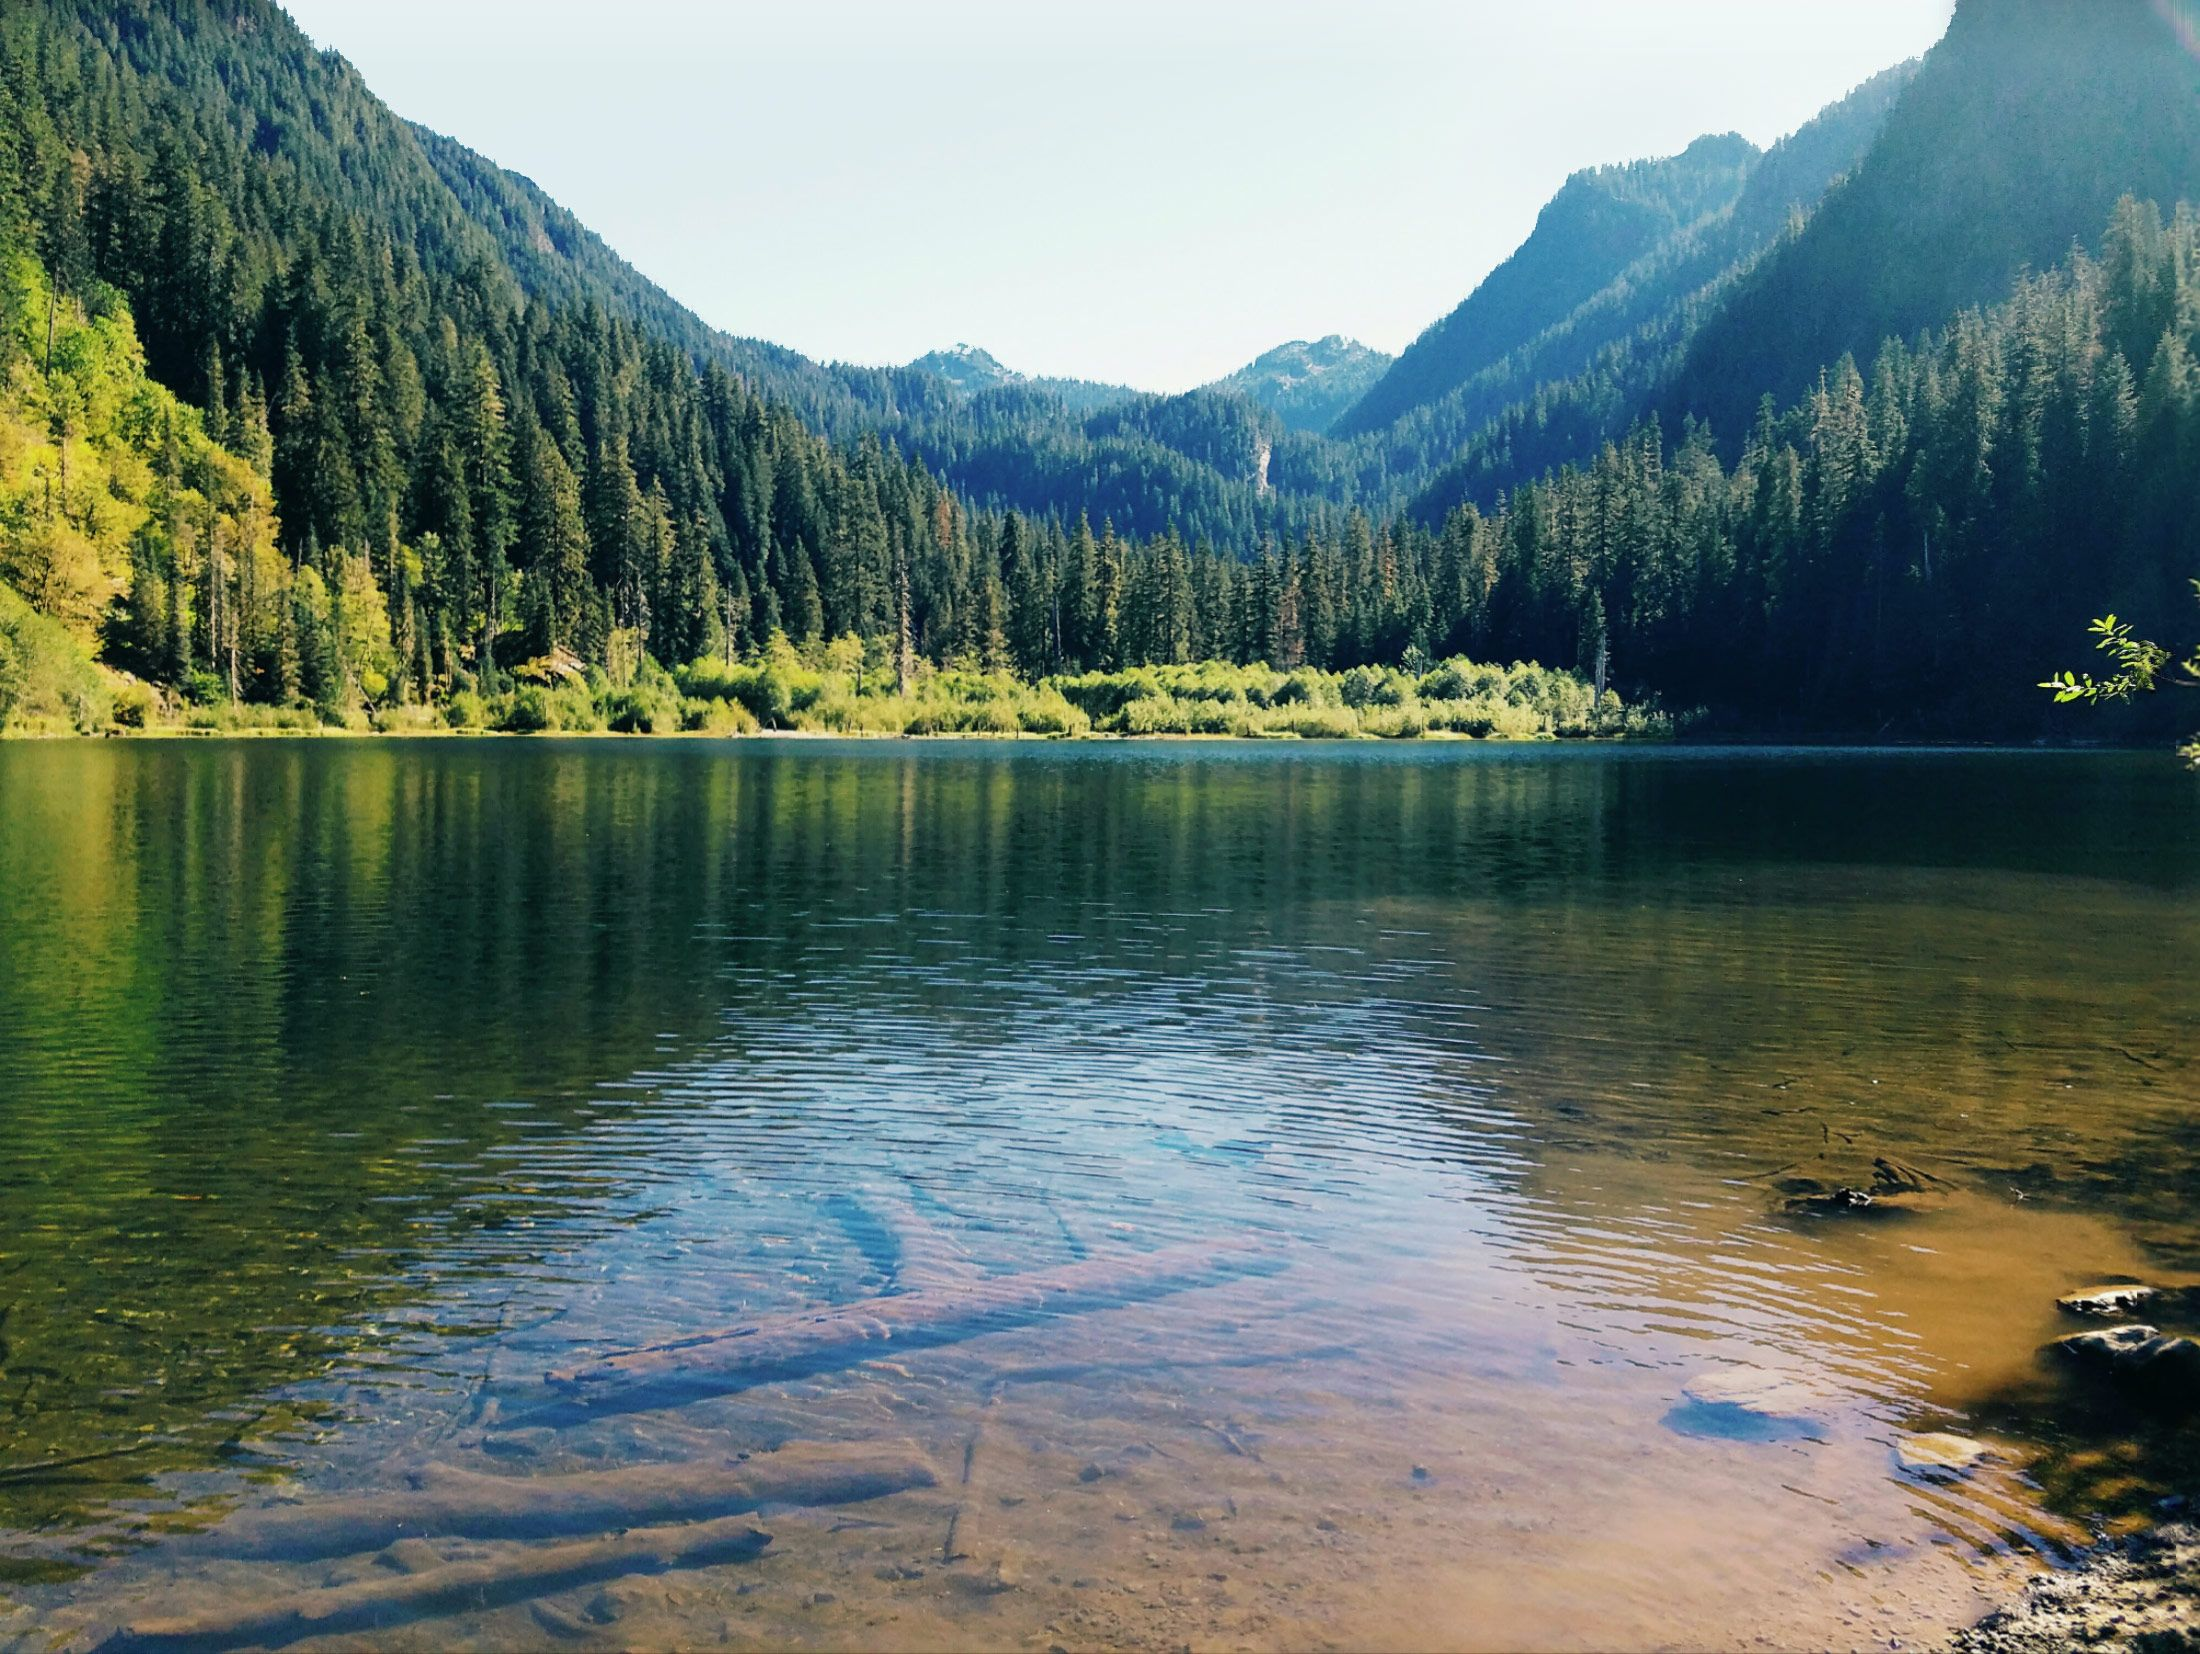 Trout Lake IN the Alpine Lakes WiLderness in King County ...